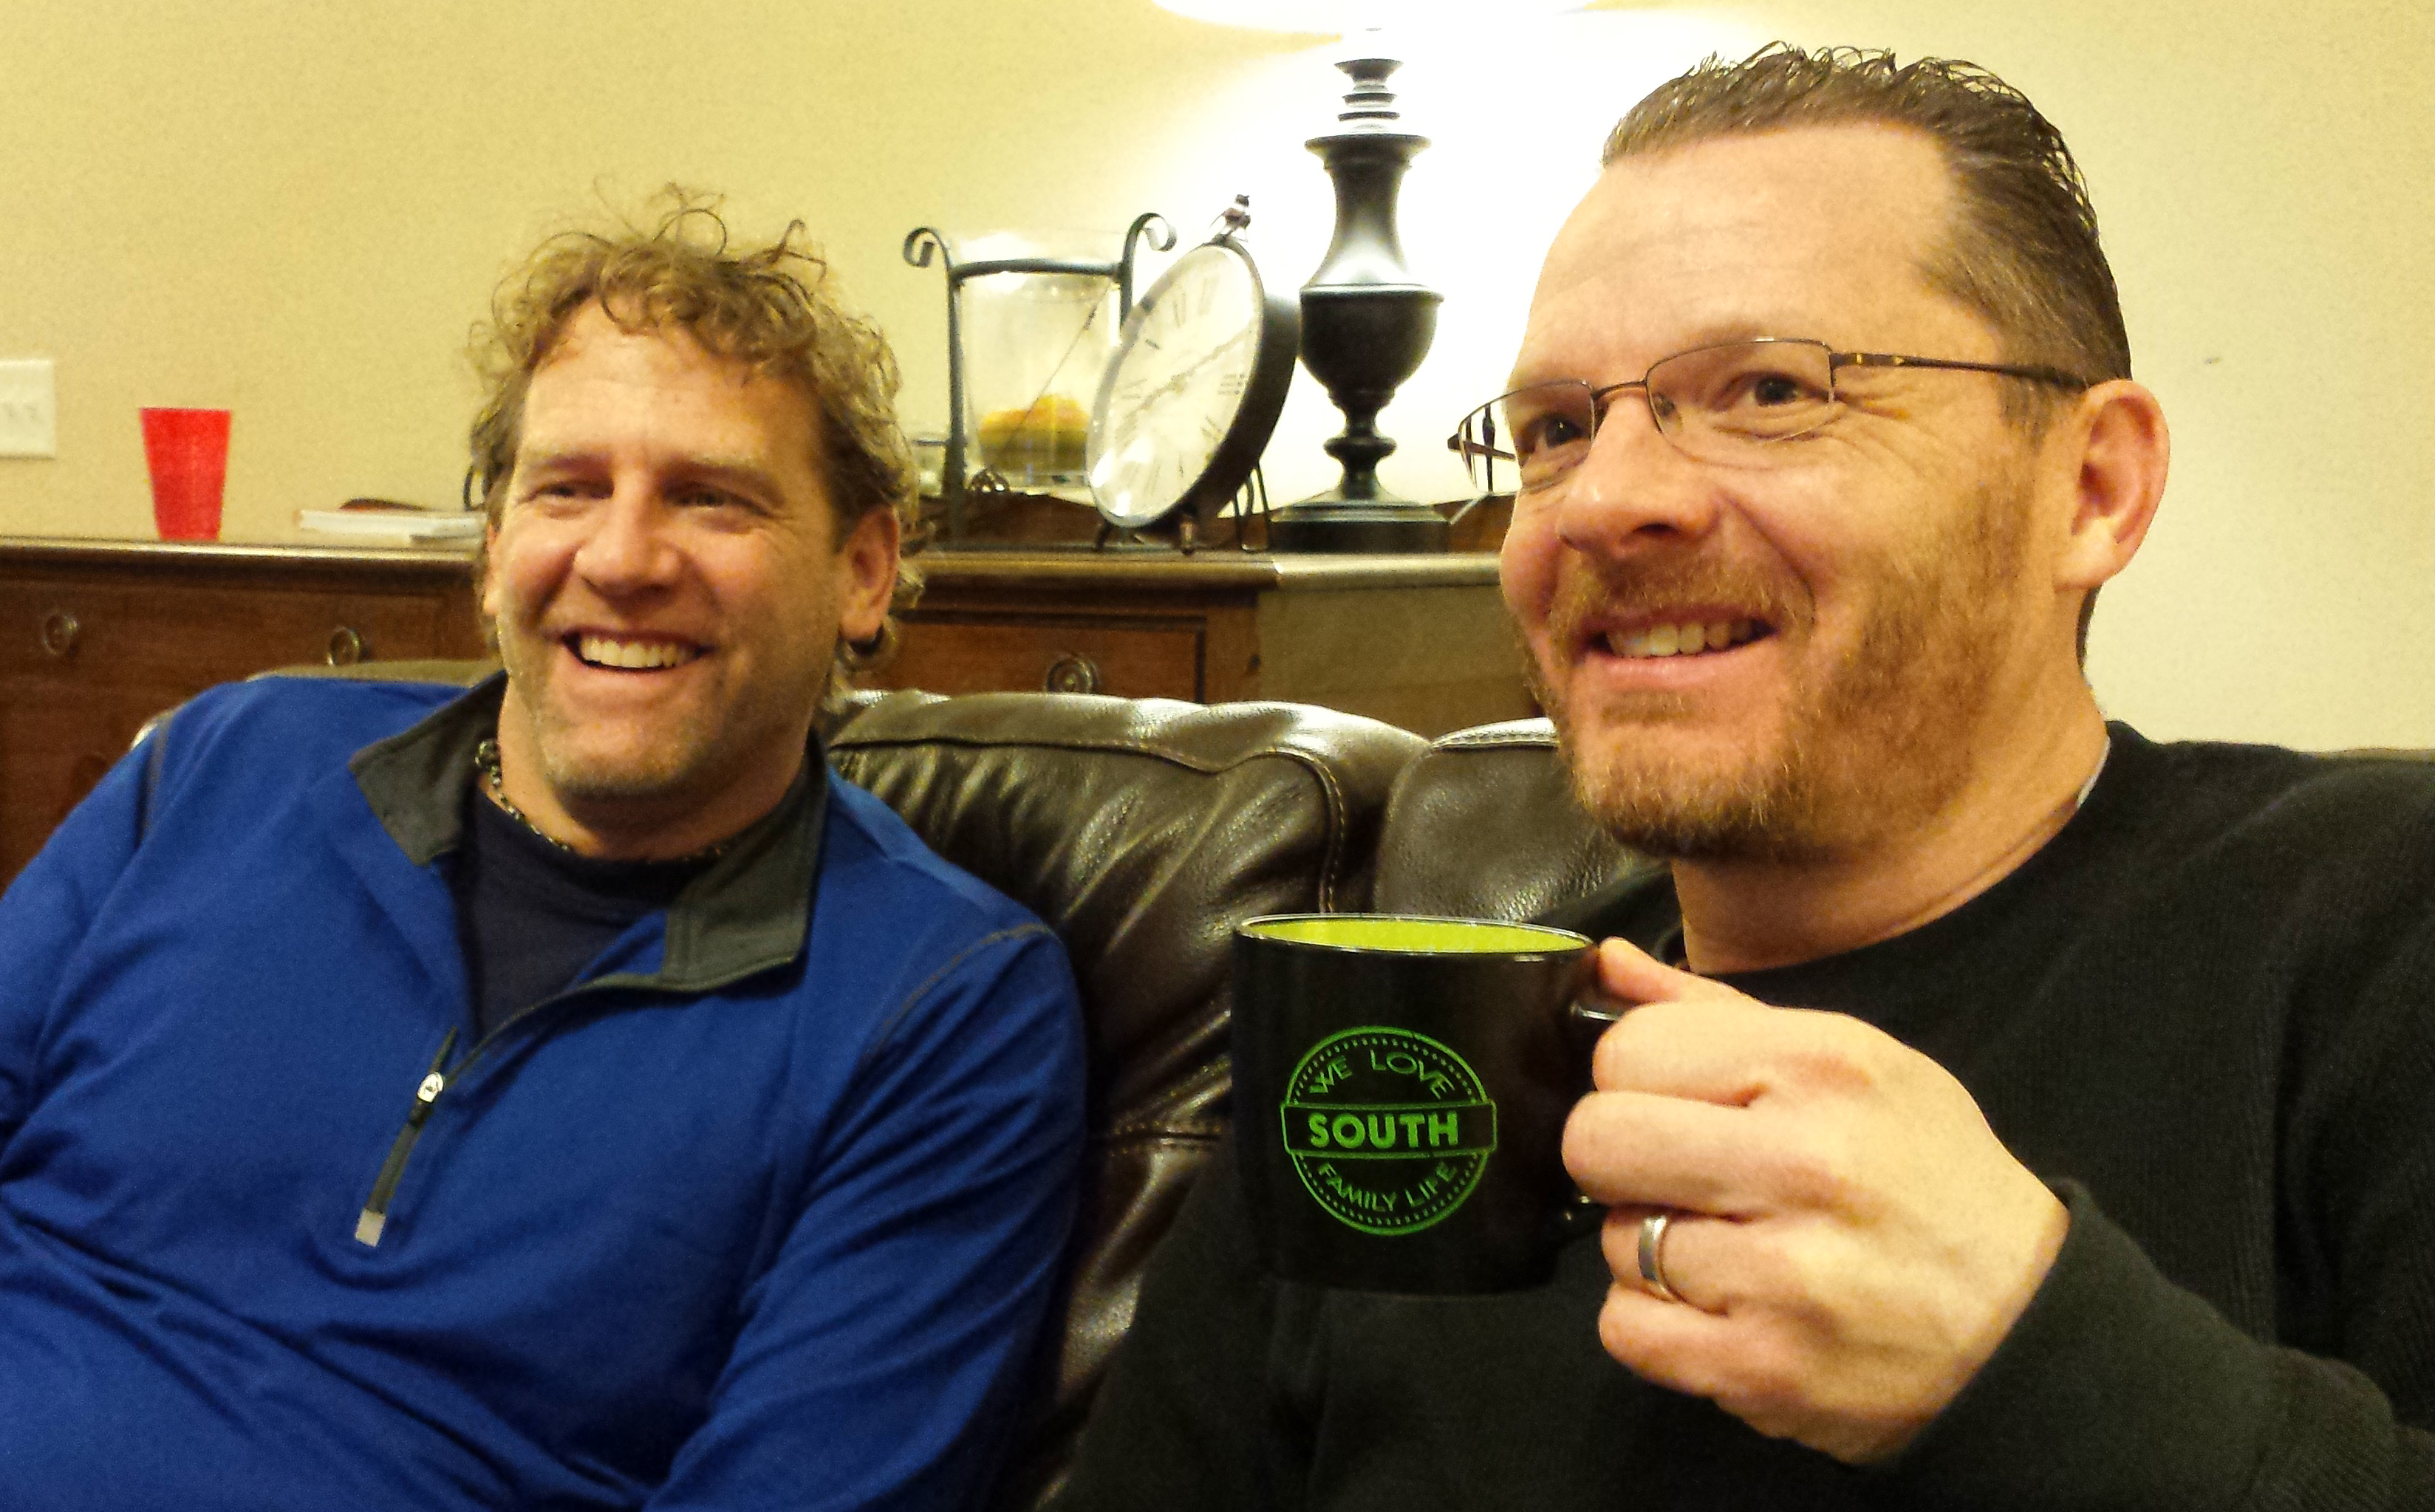 Two guys laughing and drinking coffee together on a leather couch.